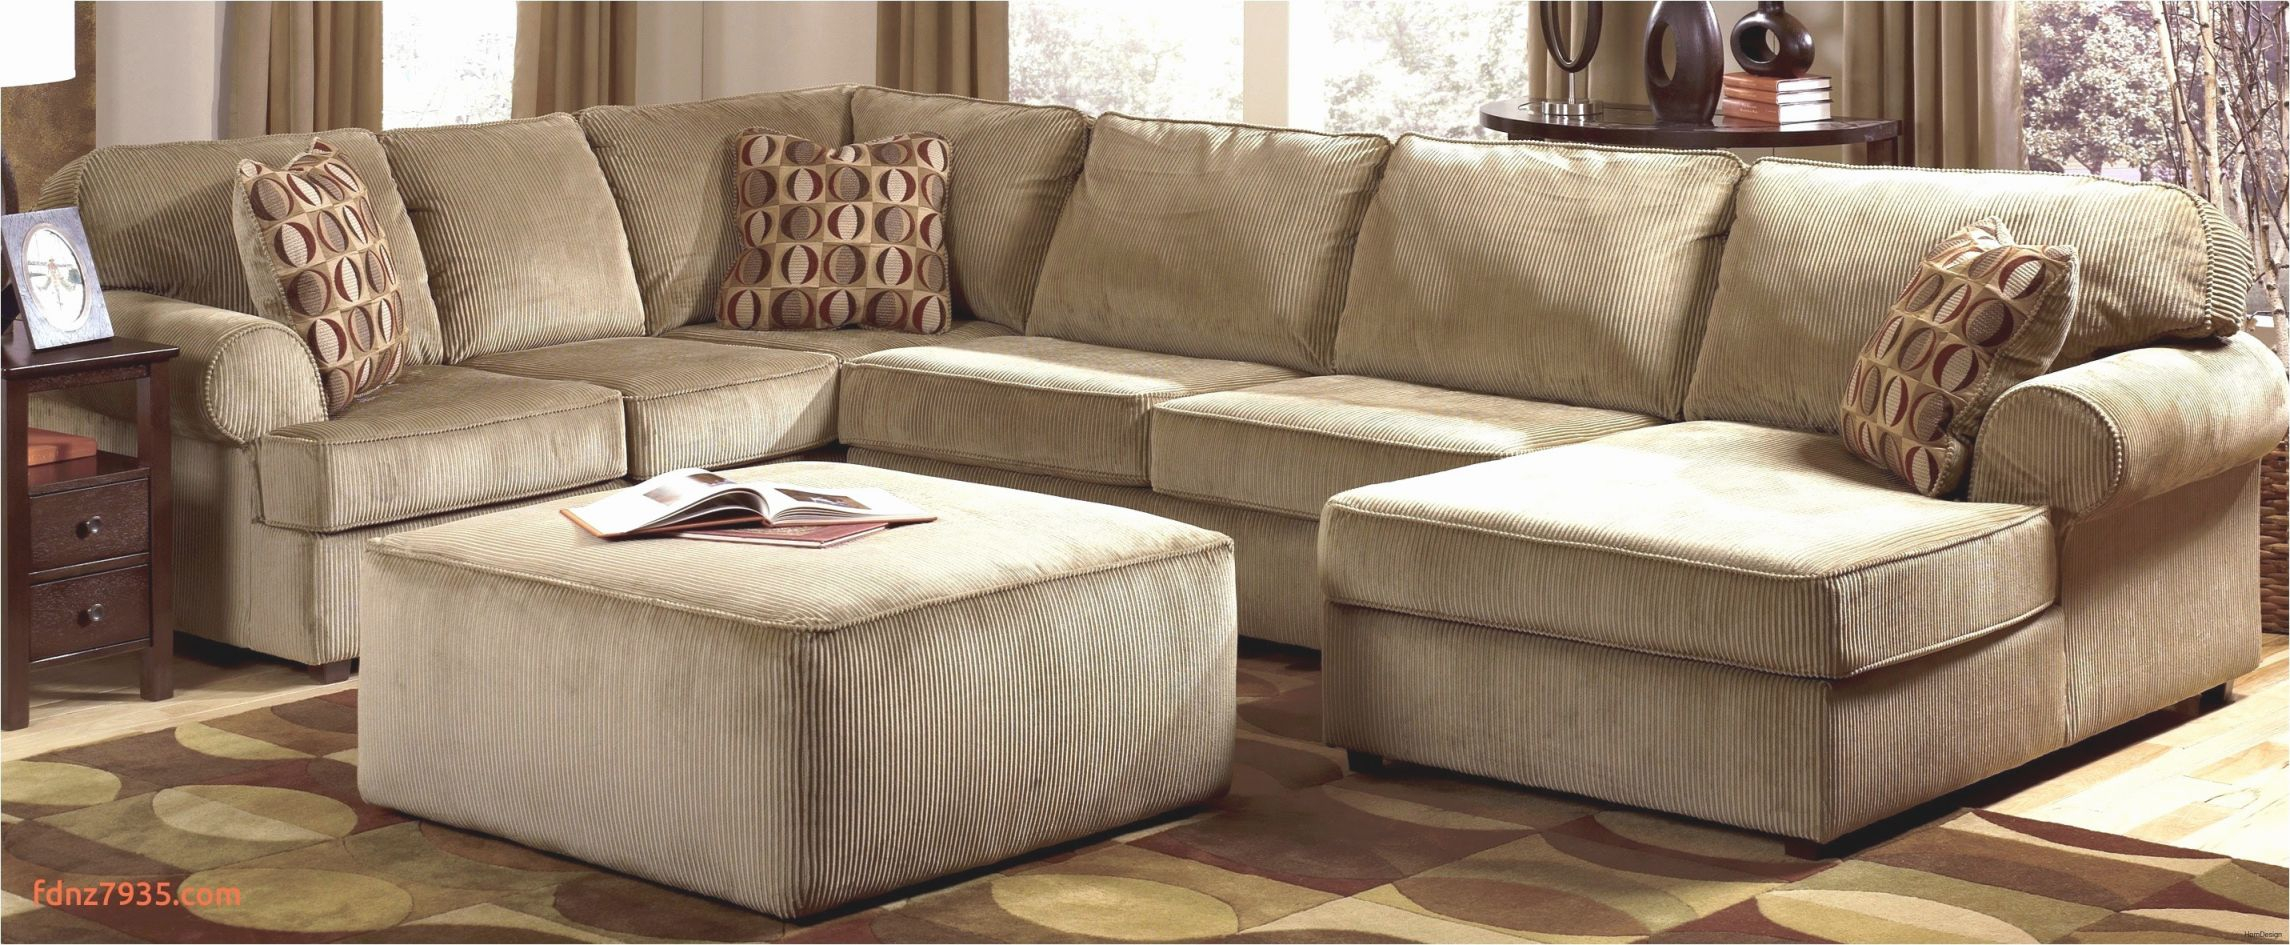 Raymour Flanigan Living Room Sets Lovely Raymour Flanigan inside Raymour And Flanigan Living Room Sets